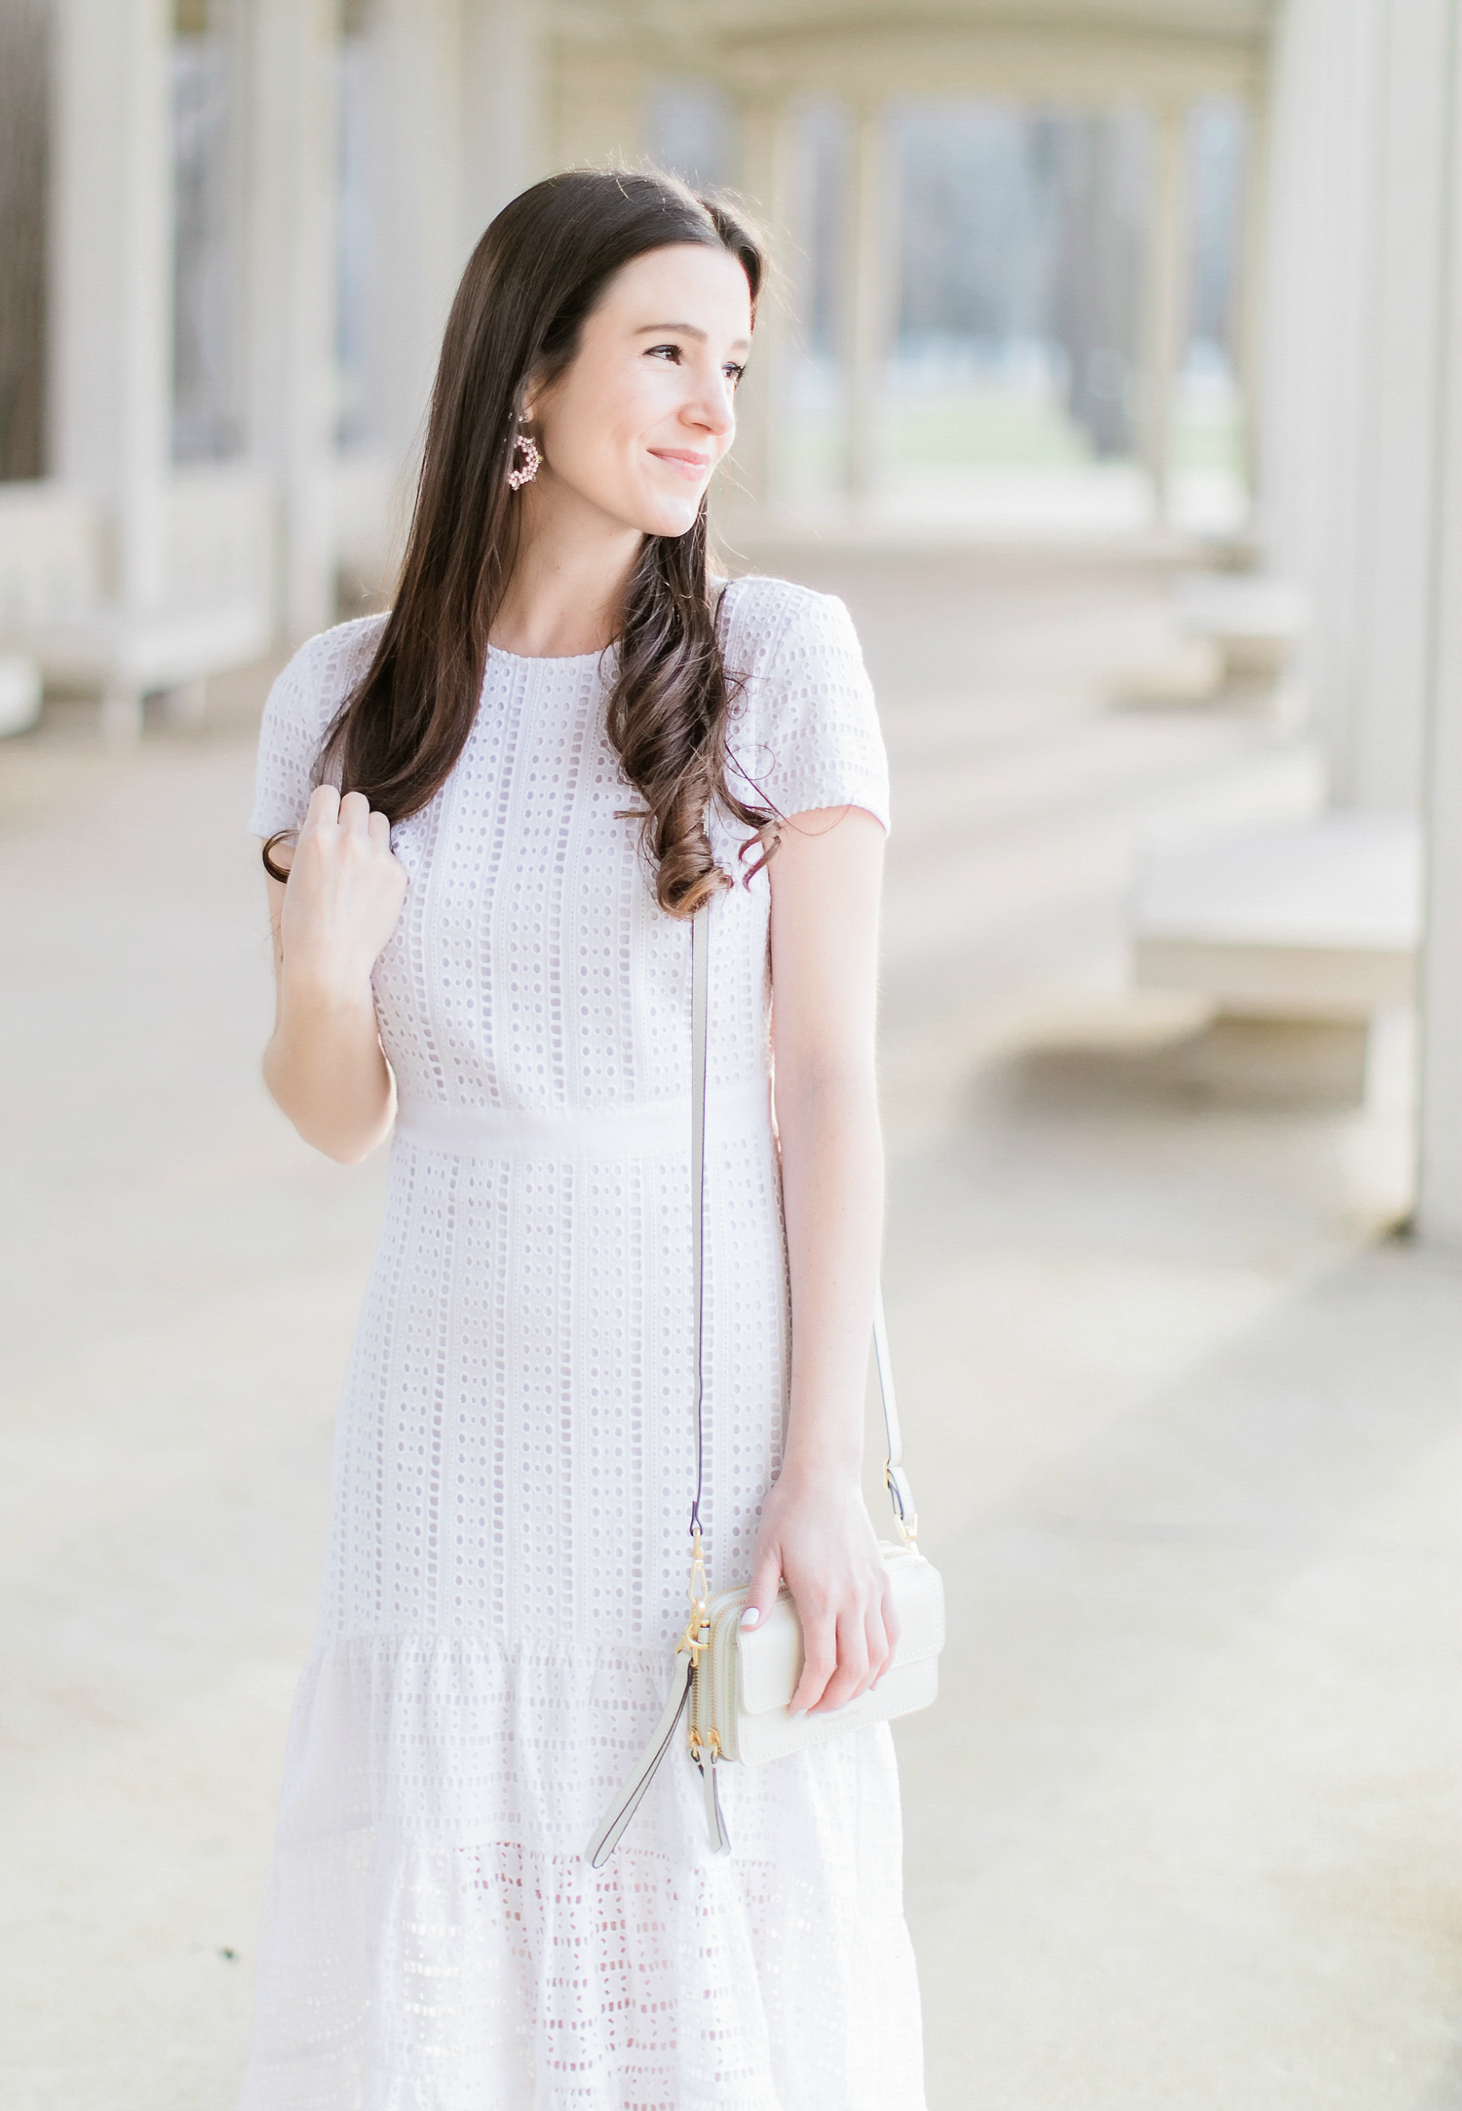 Peaceably Easter Brunch Outfit Banana Republic Let Midi Dress Bysourn Fashion Blogger Stephanie Easter Brunch Outfit Banana Republic Let Midi Dress wedding dress Banana Republic Dresses